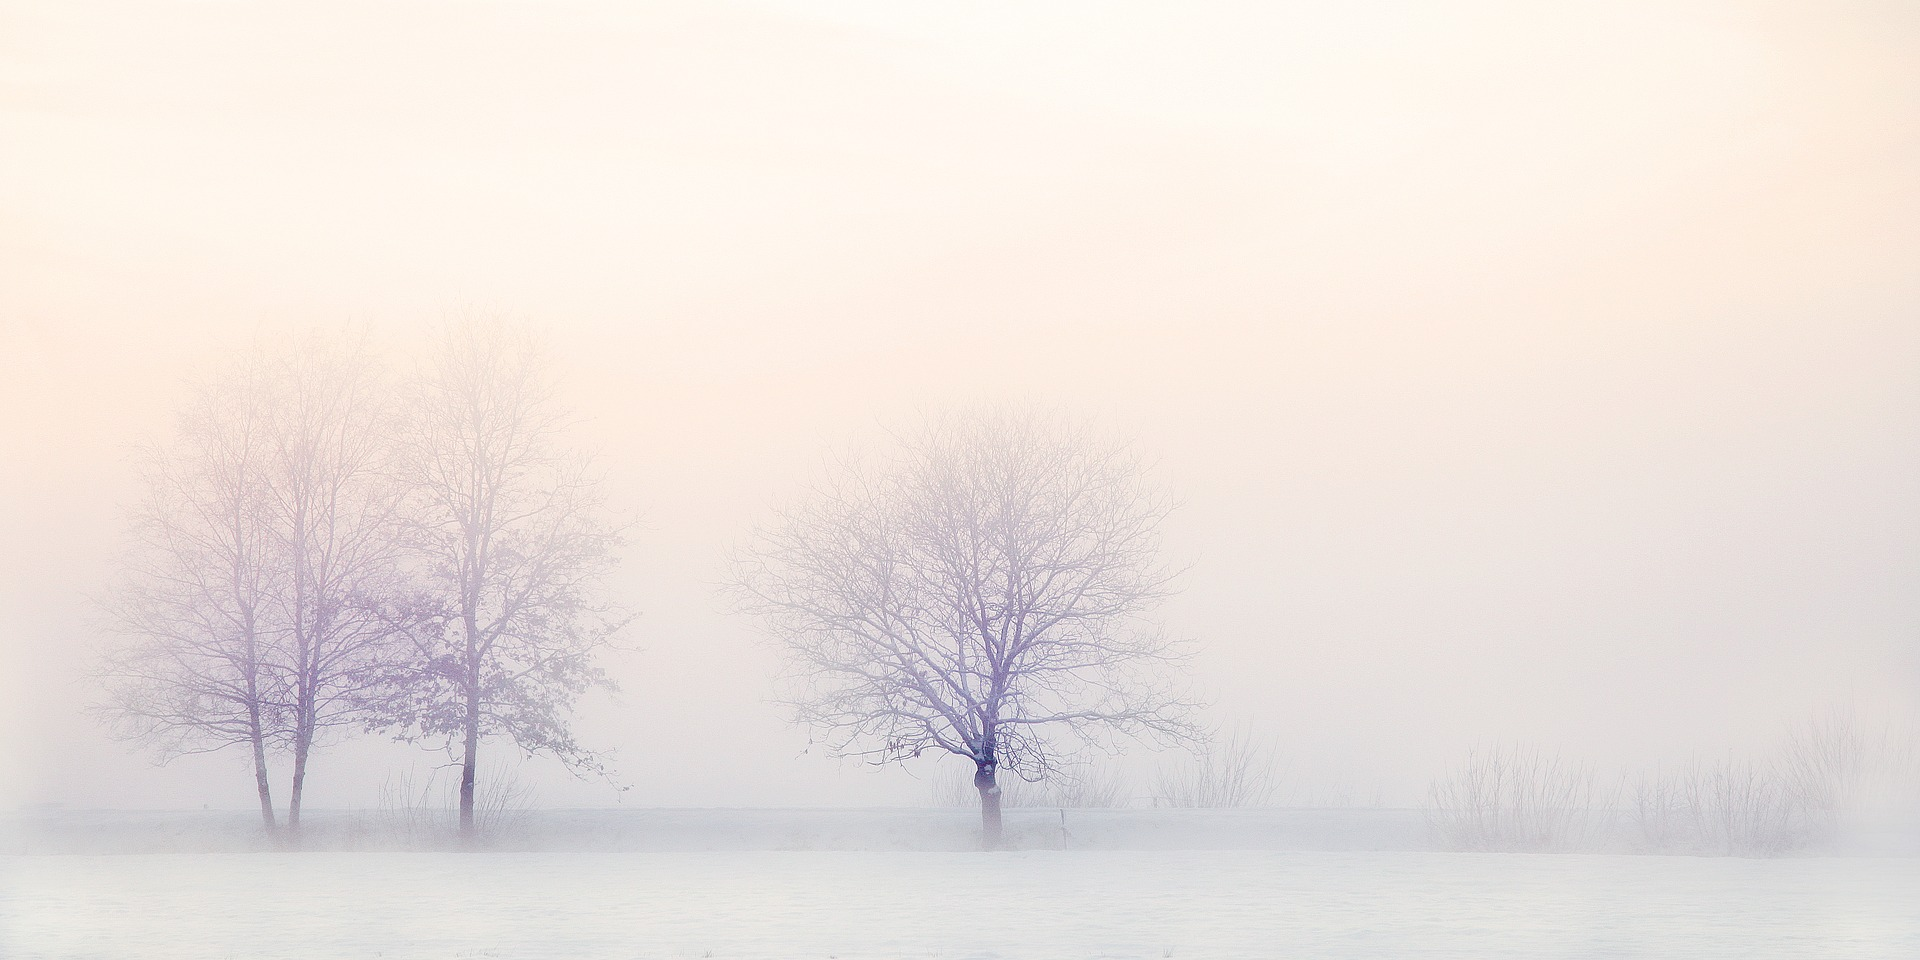 winter-landscape-2571788_1920